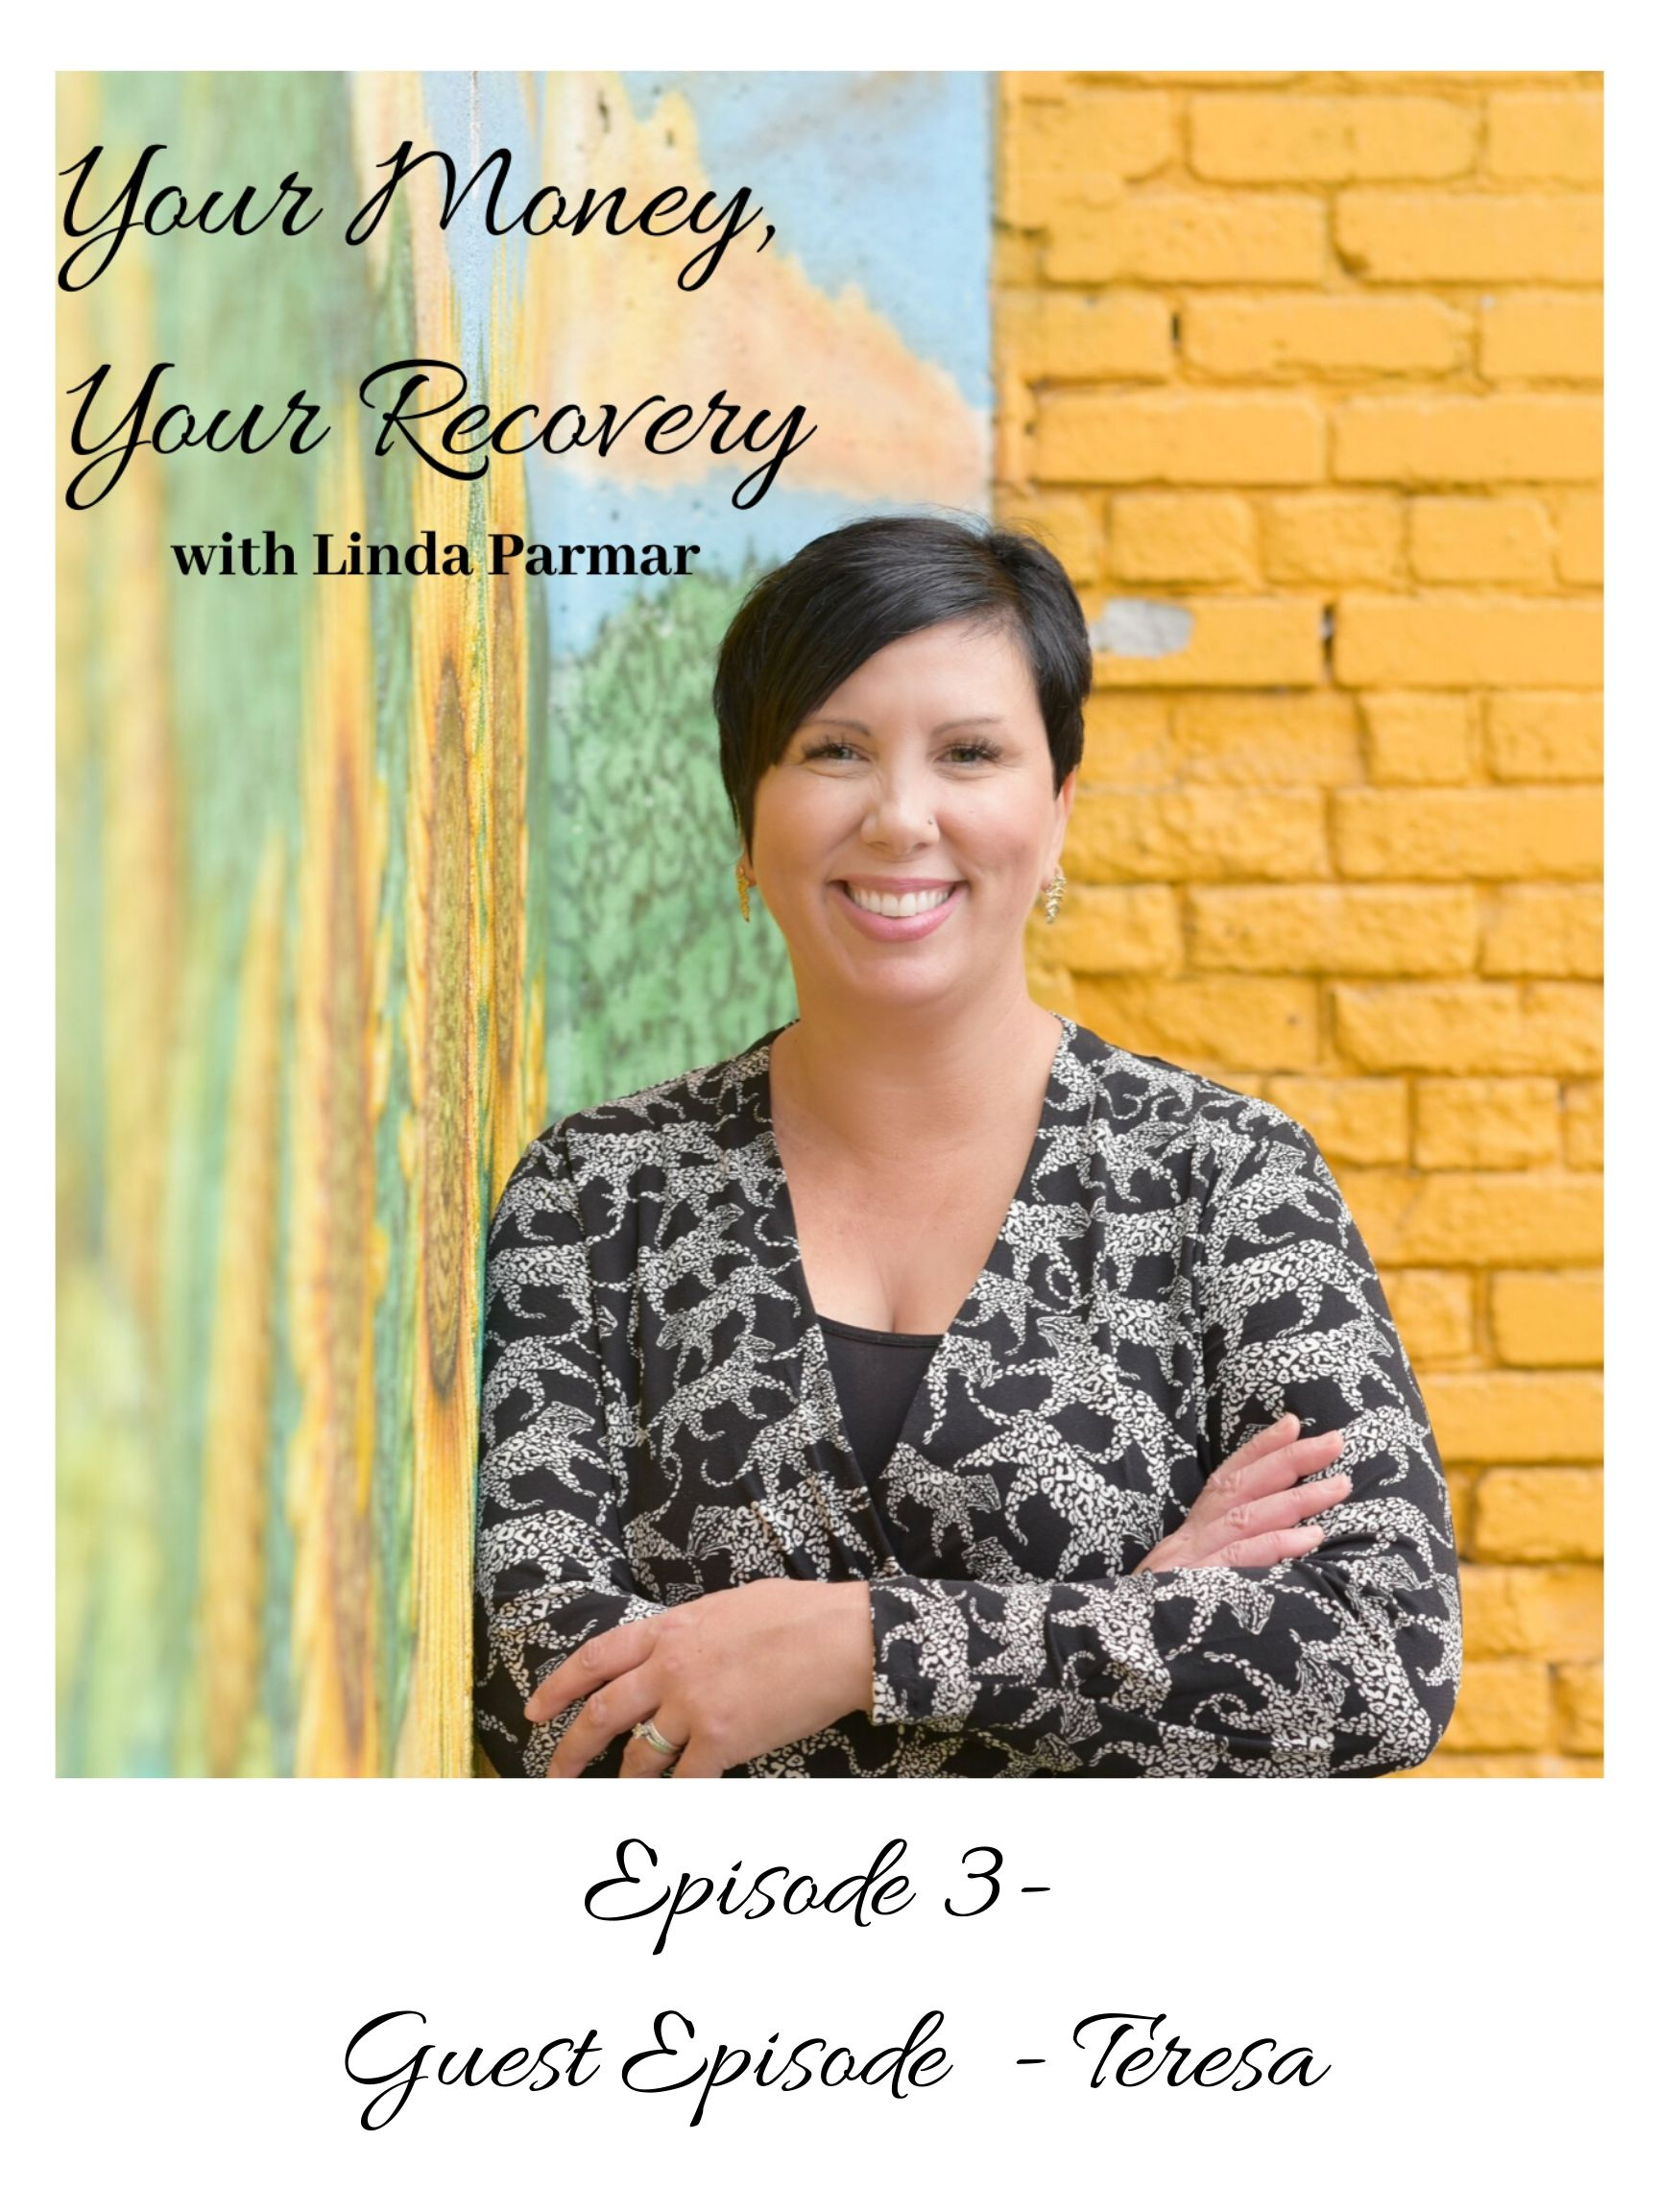 Episode 3 - Your Money, Your Recovery - Teresa